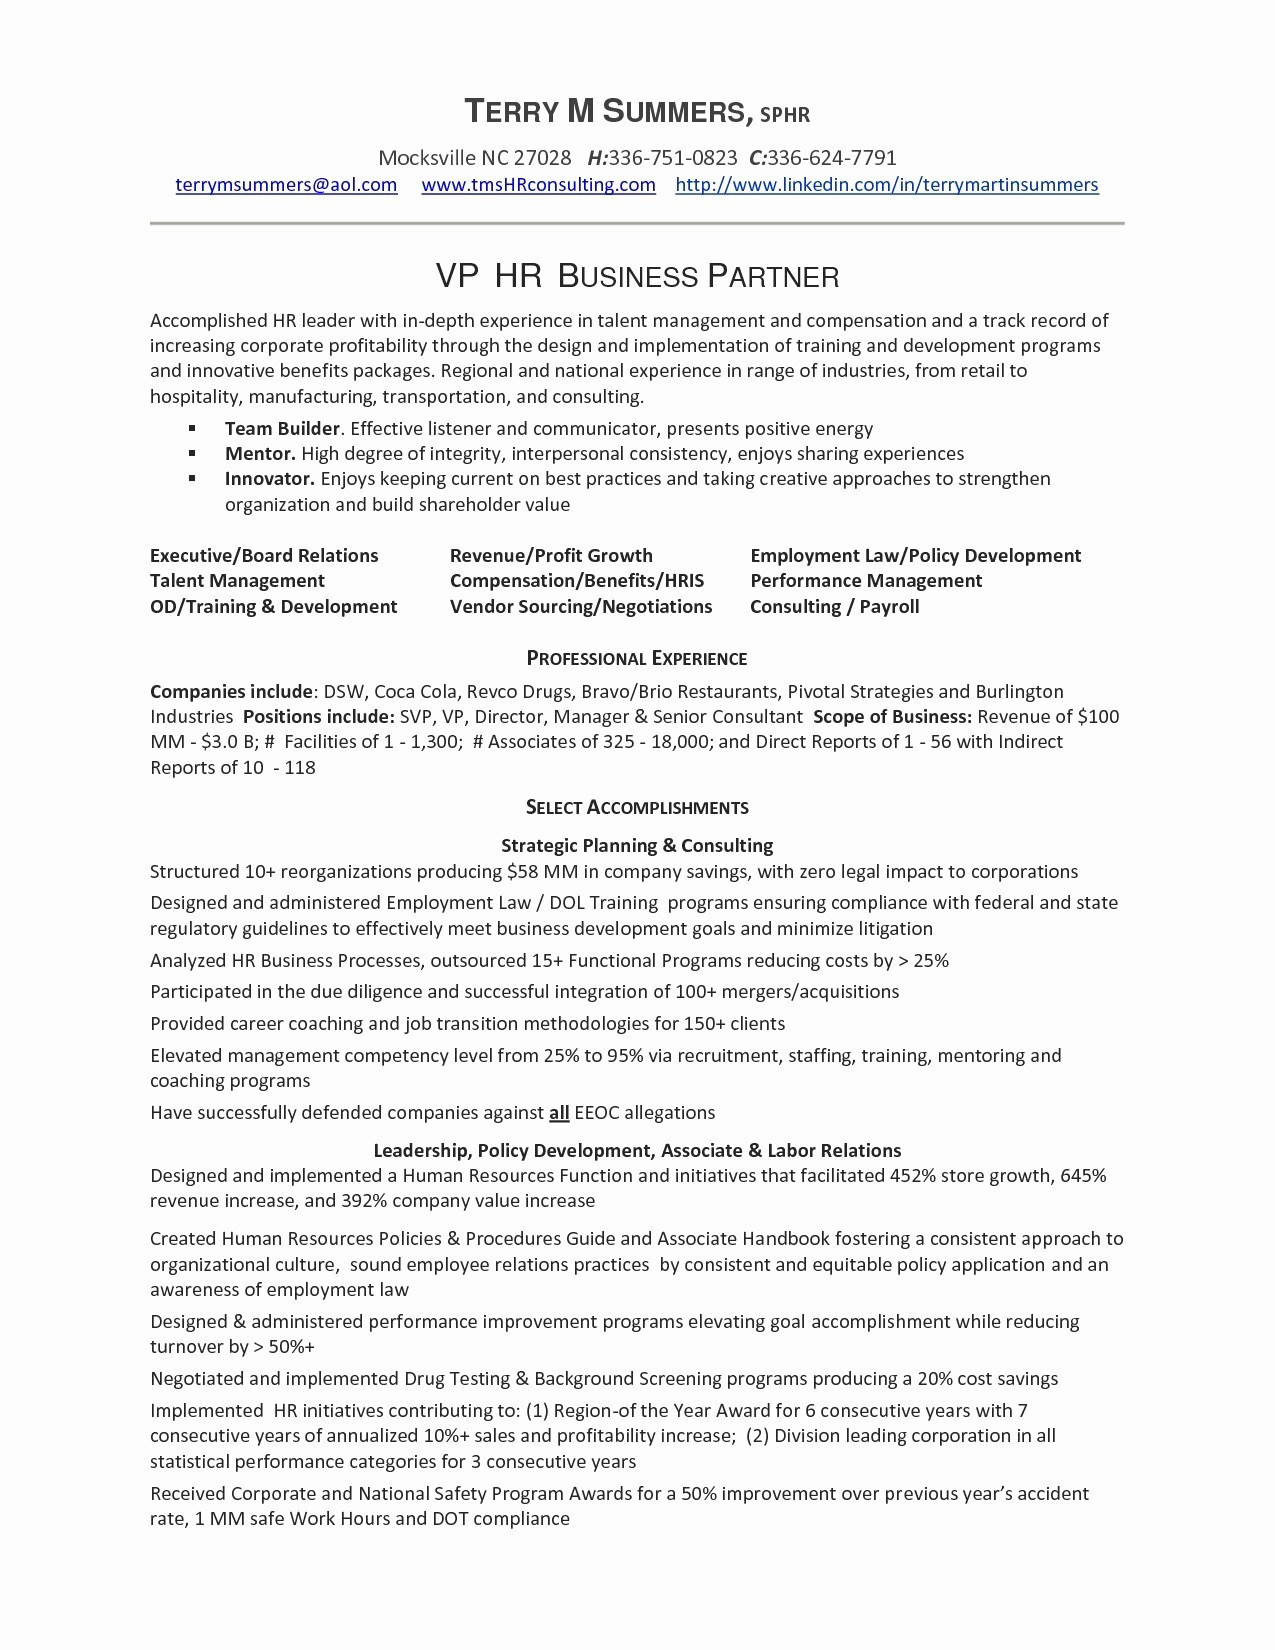 Account Manager Resume Template - Accounts Manager Cover Letters – Legacylendinggroup